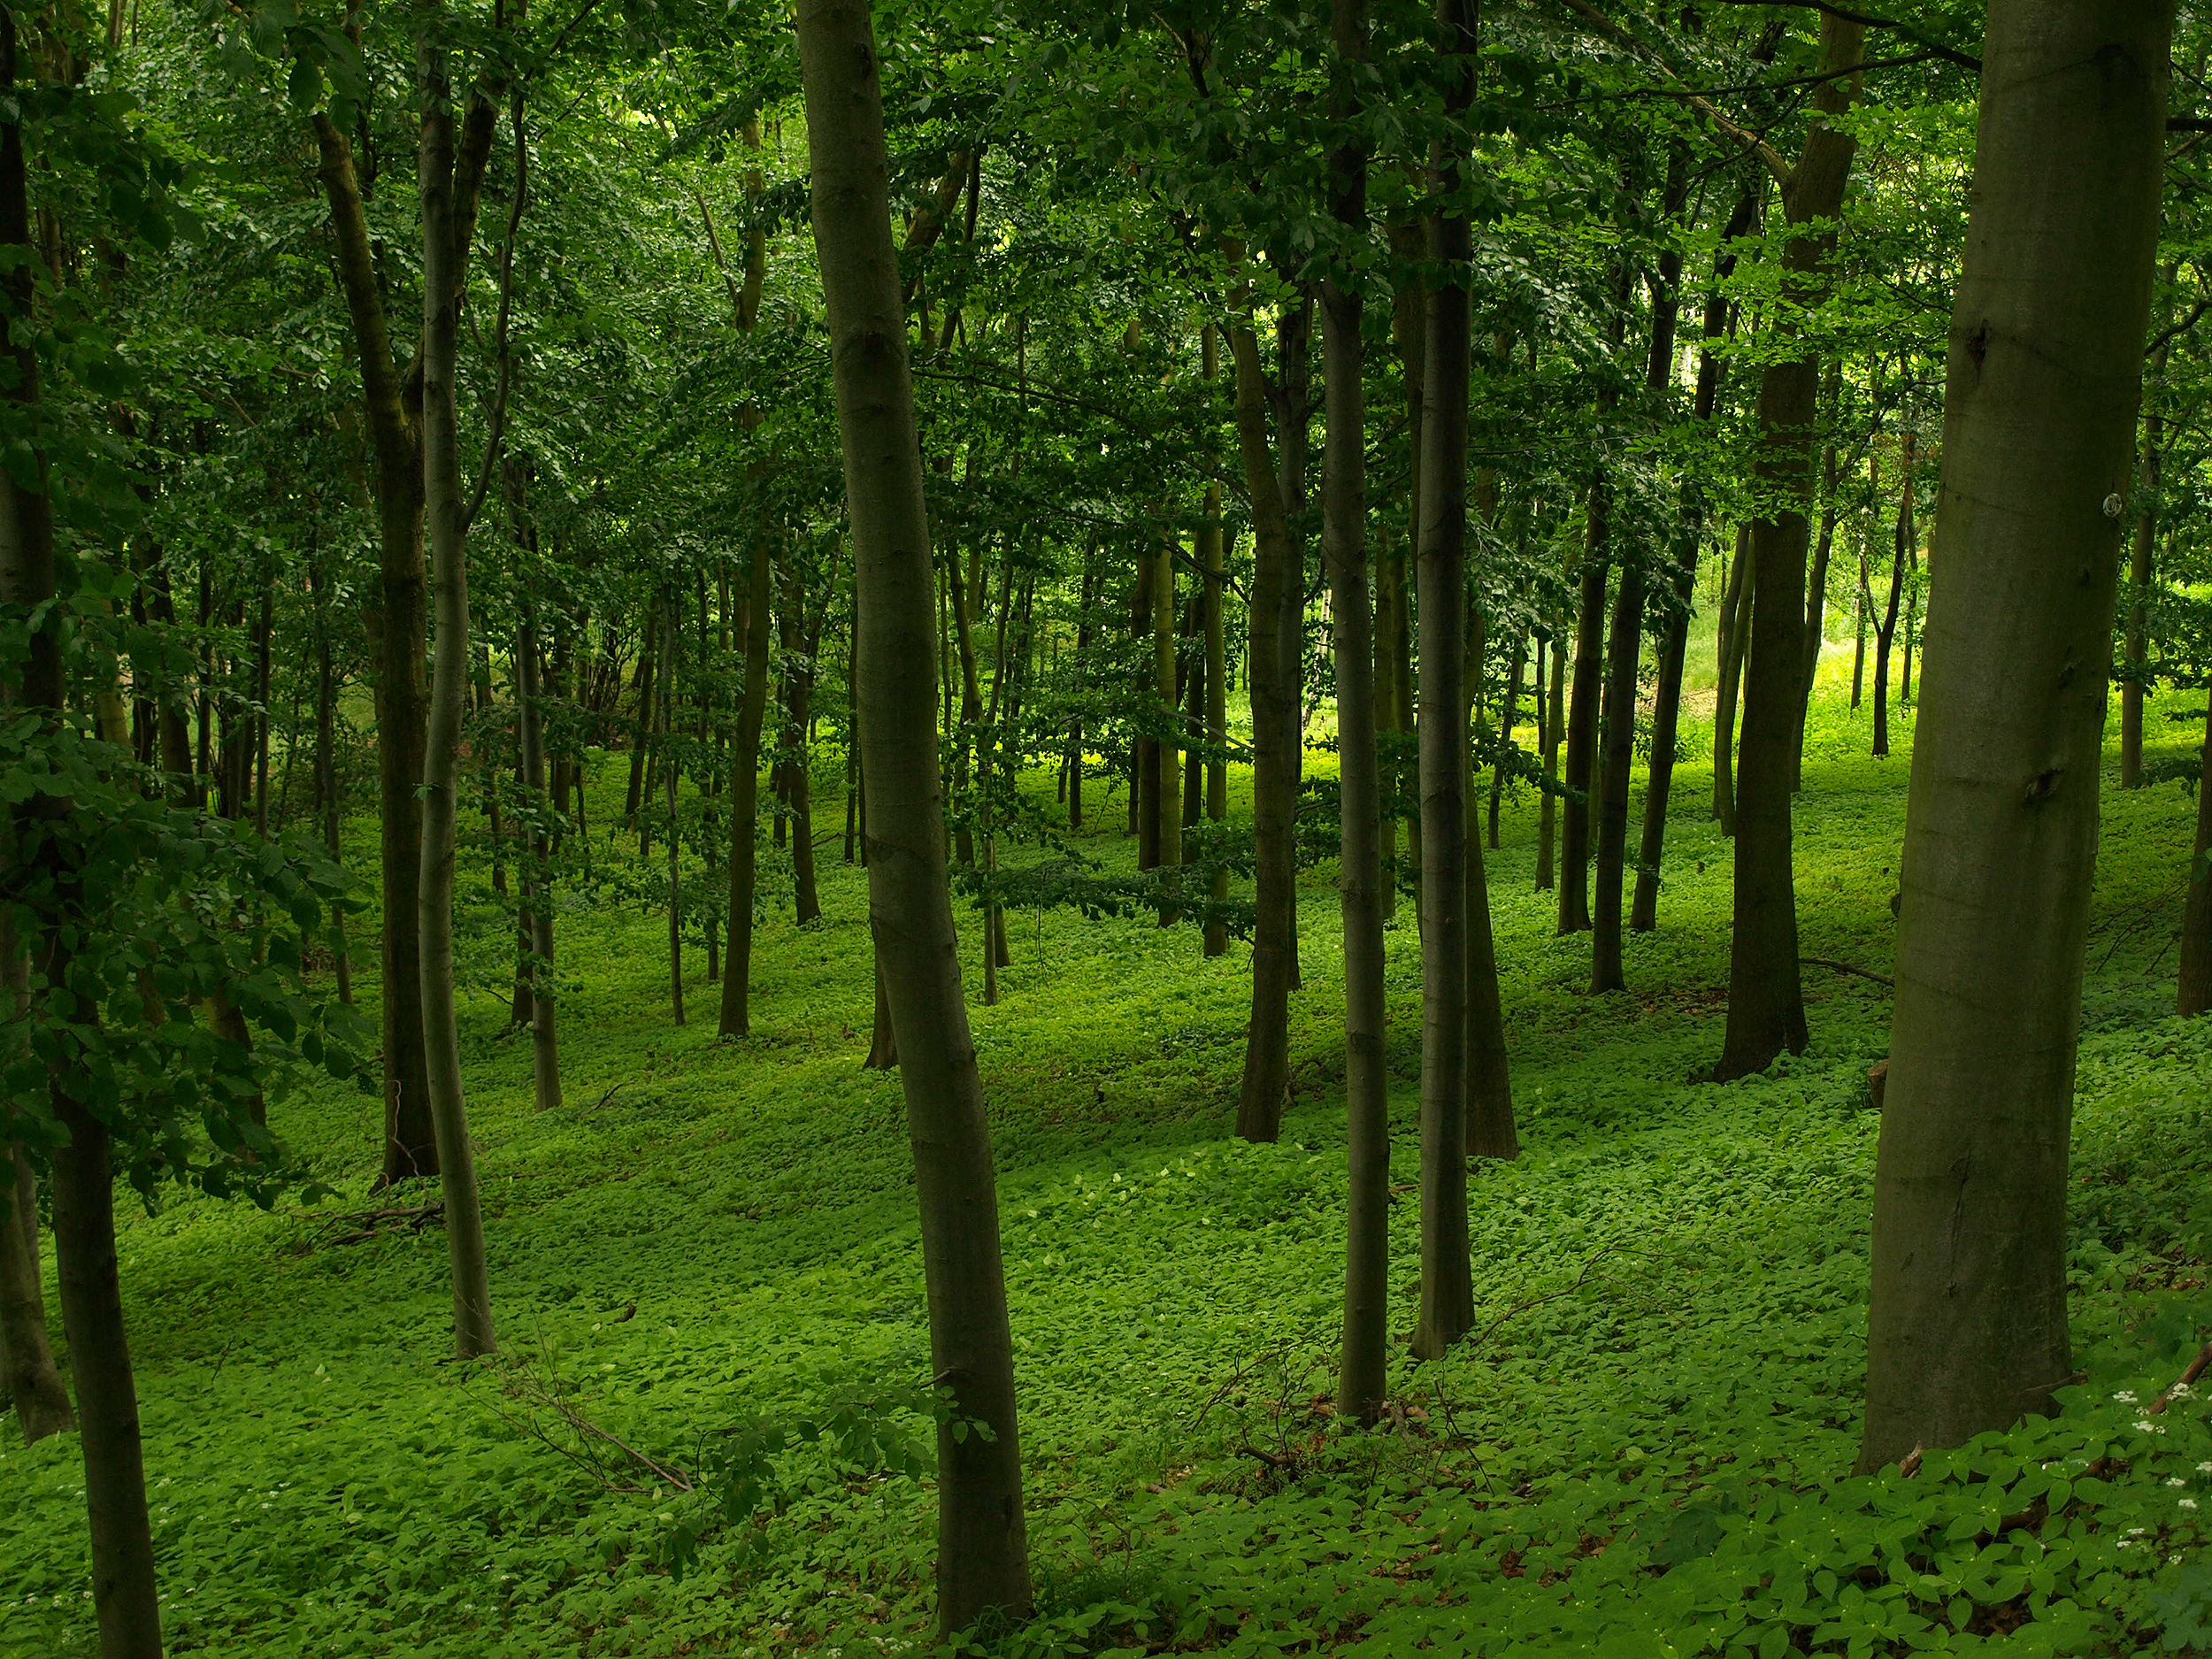 lo rewilding trees forests - HD1600×900